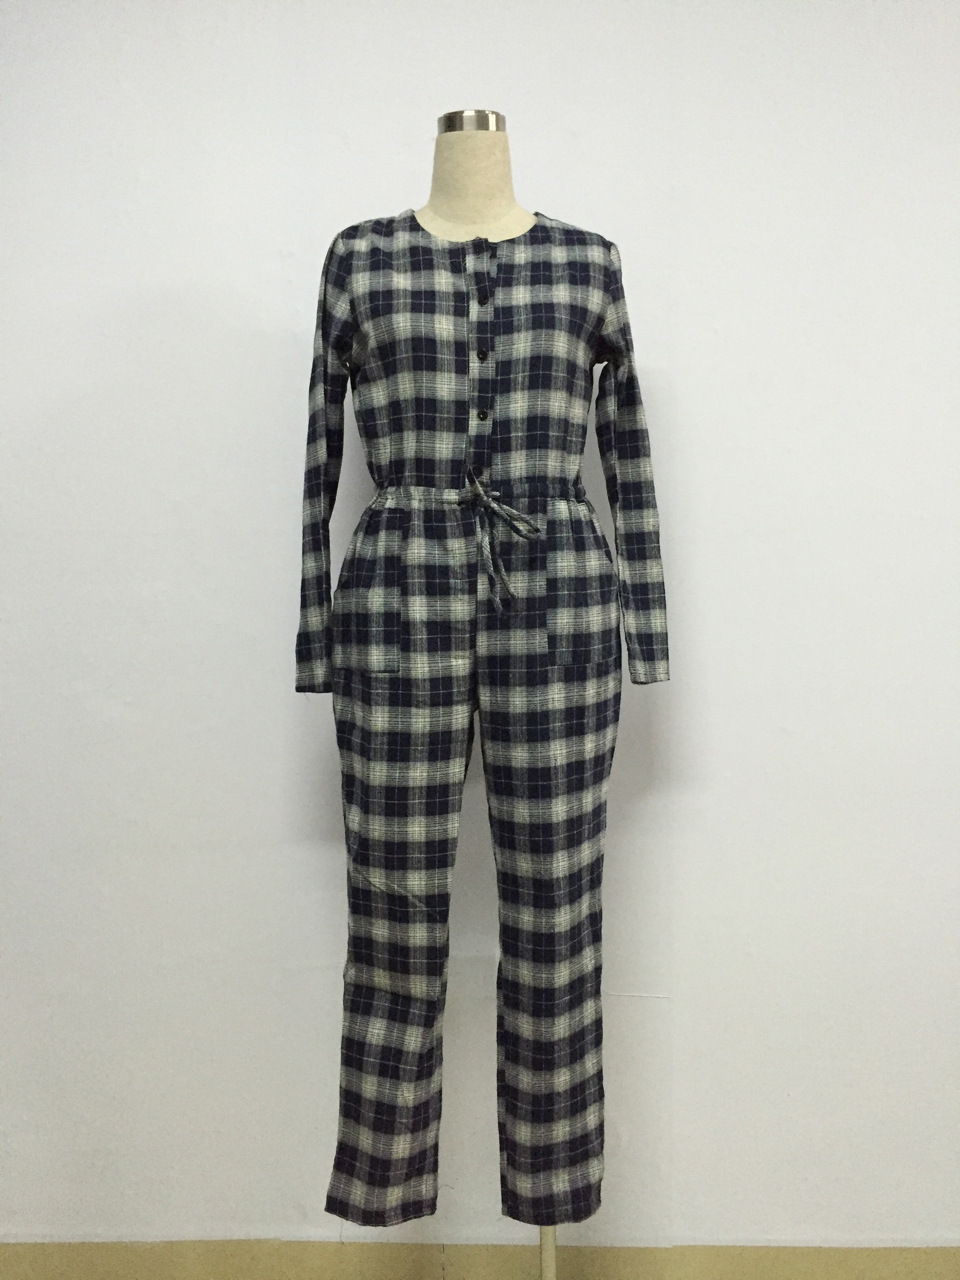 Echione Plus Size Rompers Womens Jumpsuit Blouses Plaid Black and White Sexy Bodycon Playsuit Flare Sleeves Long Pants Jumpsuits